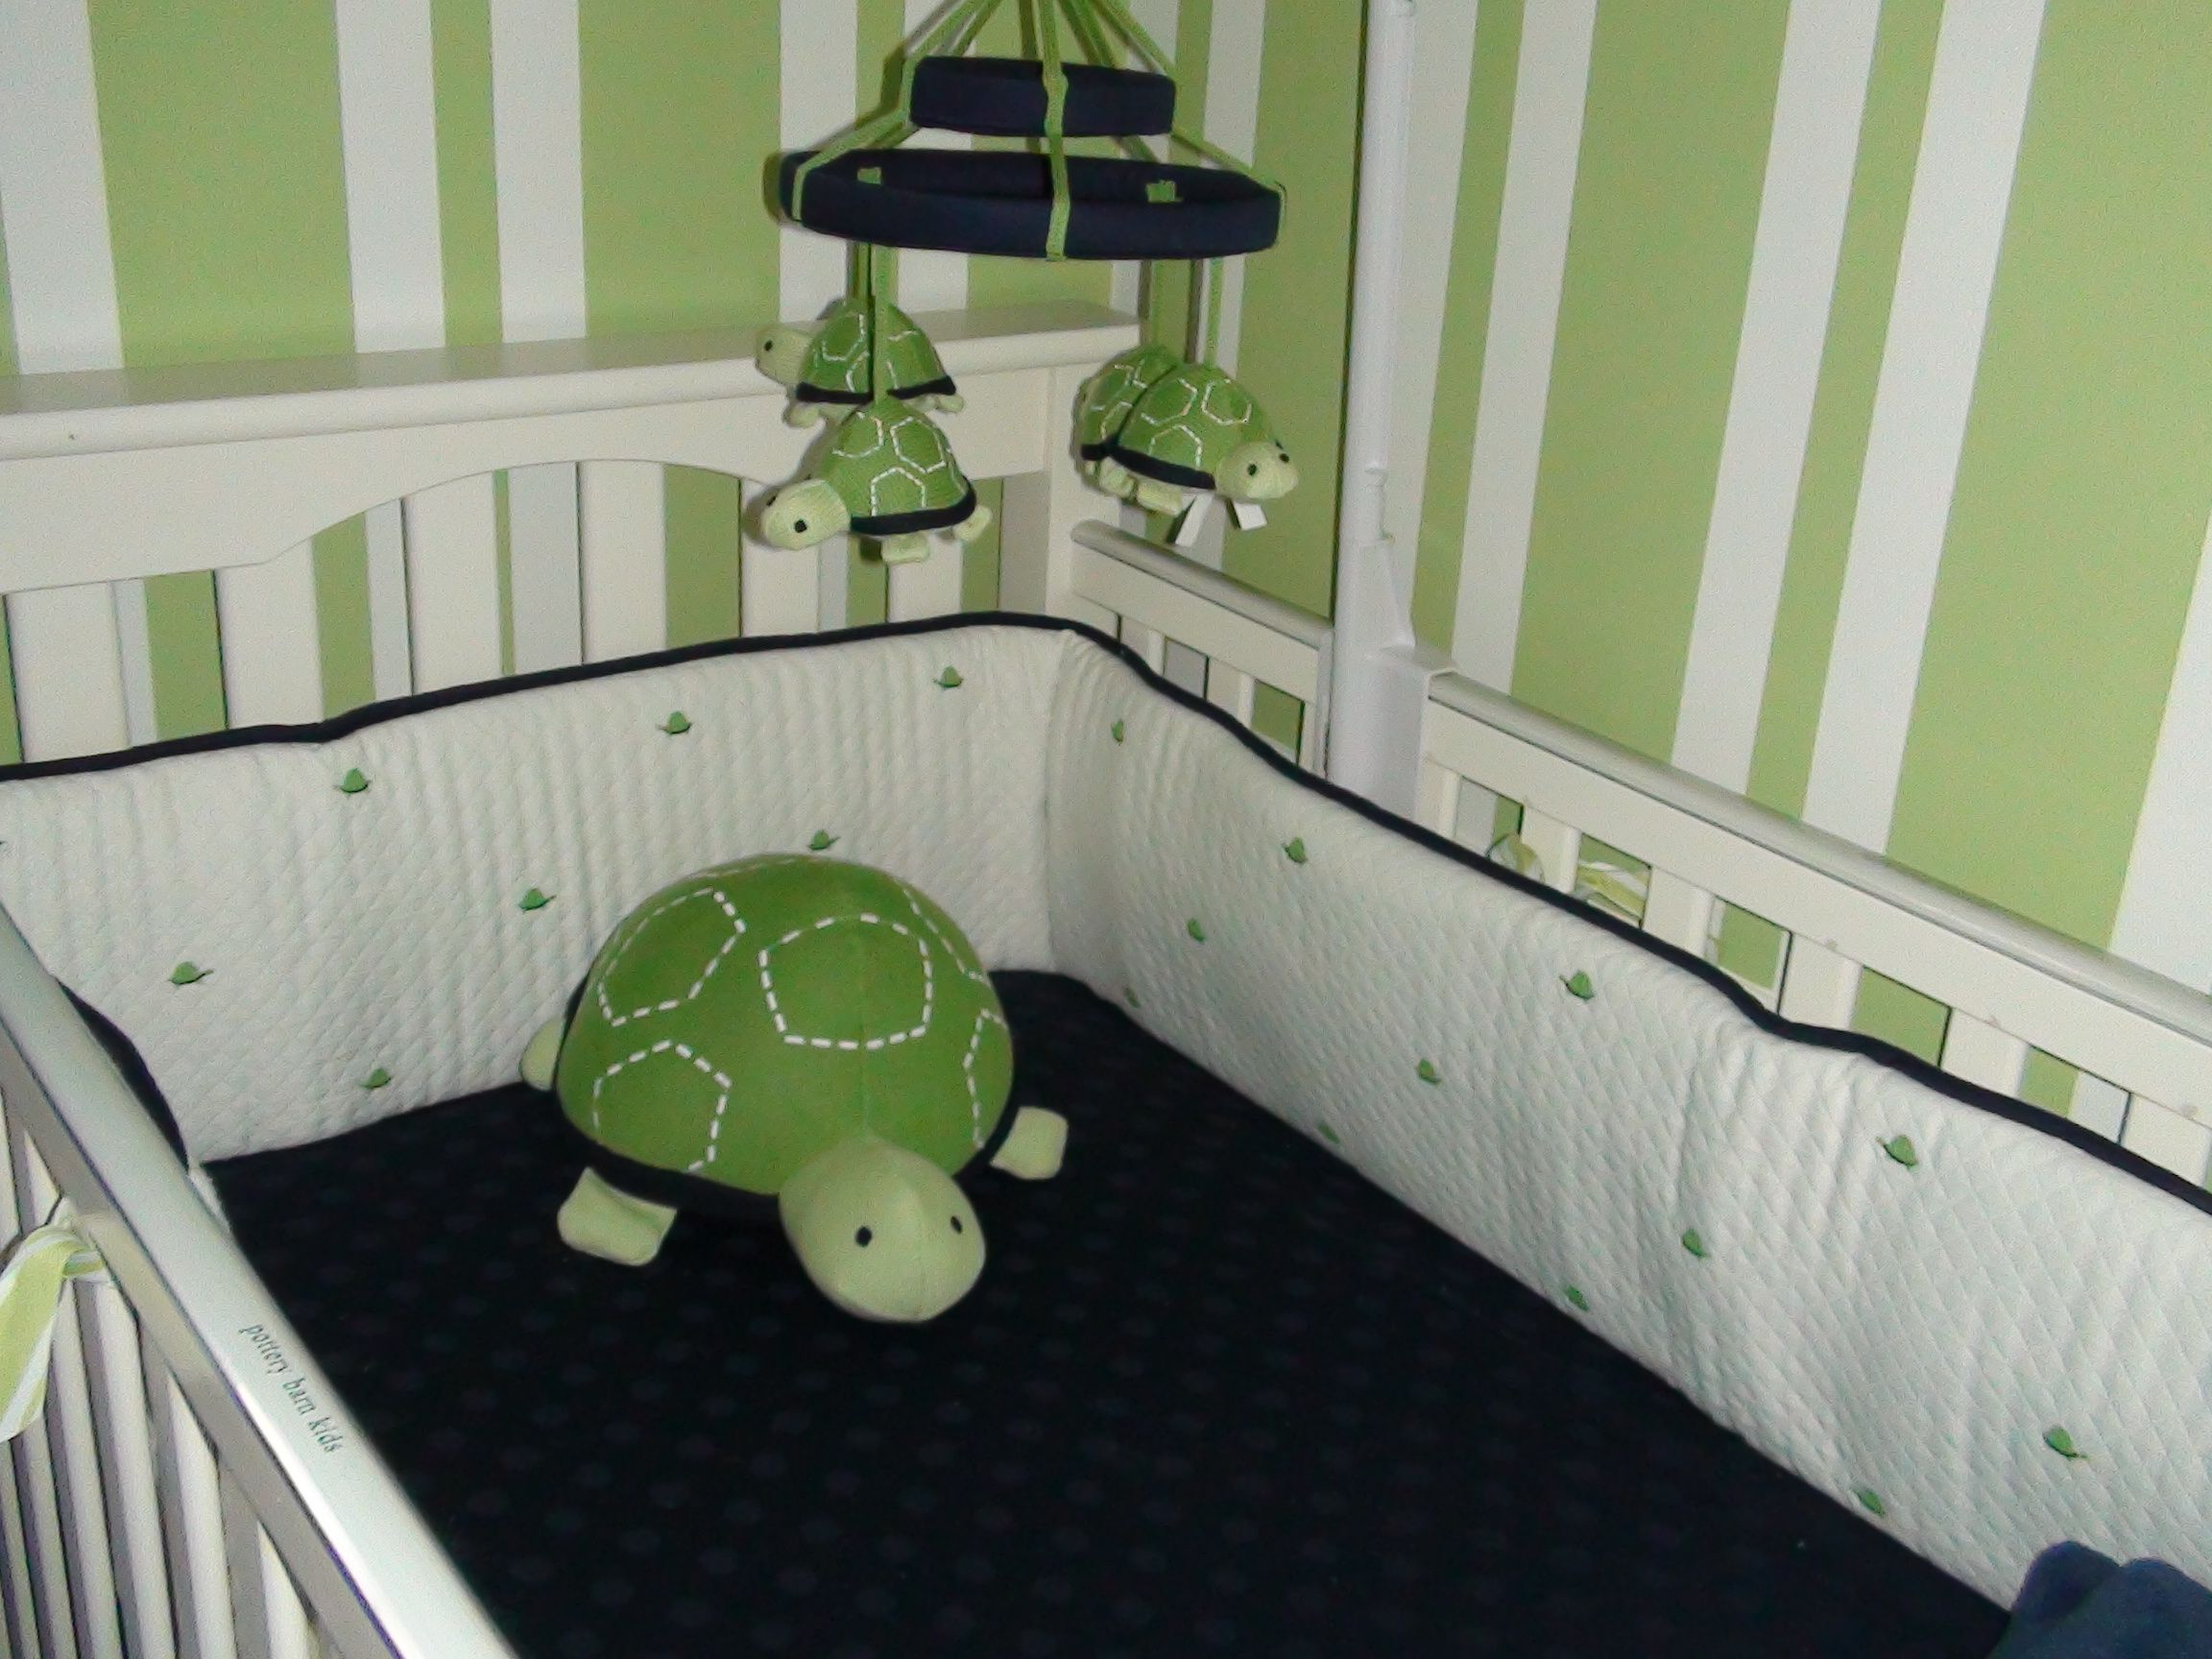 Blue And Green Nursery With Preppy Turtle Bedding From Gap Rug Furntiure Roman